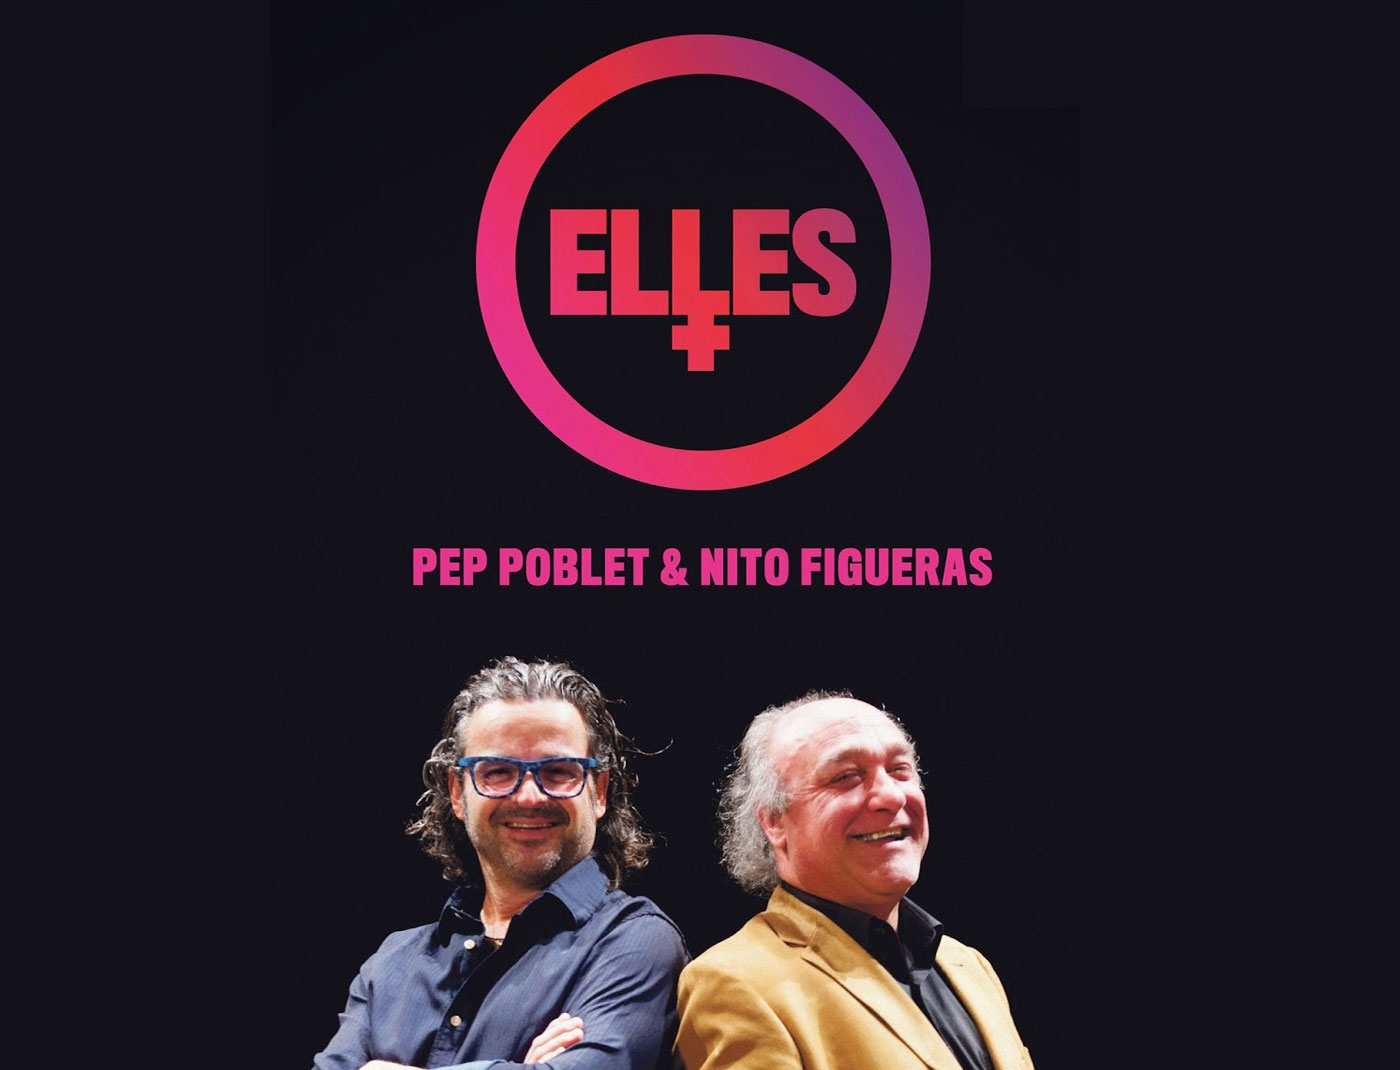 PEP POBLET & NITO FIGUERAS